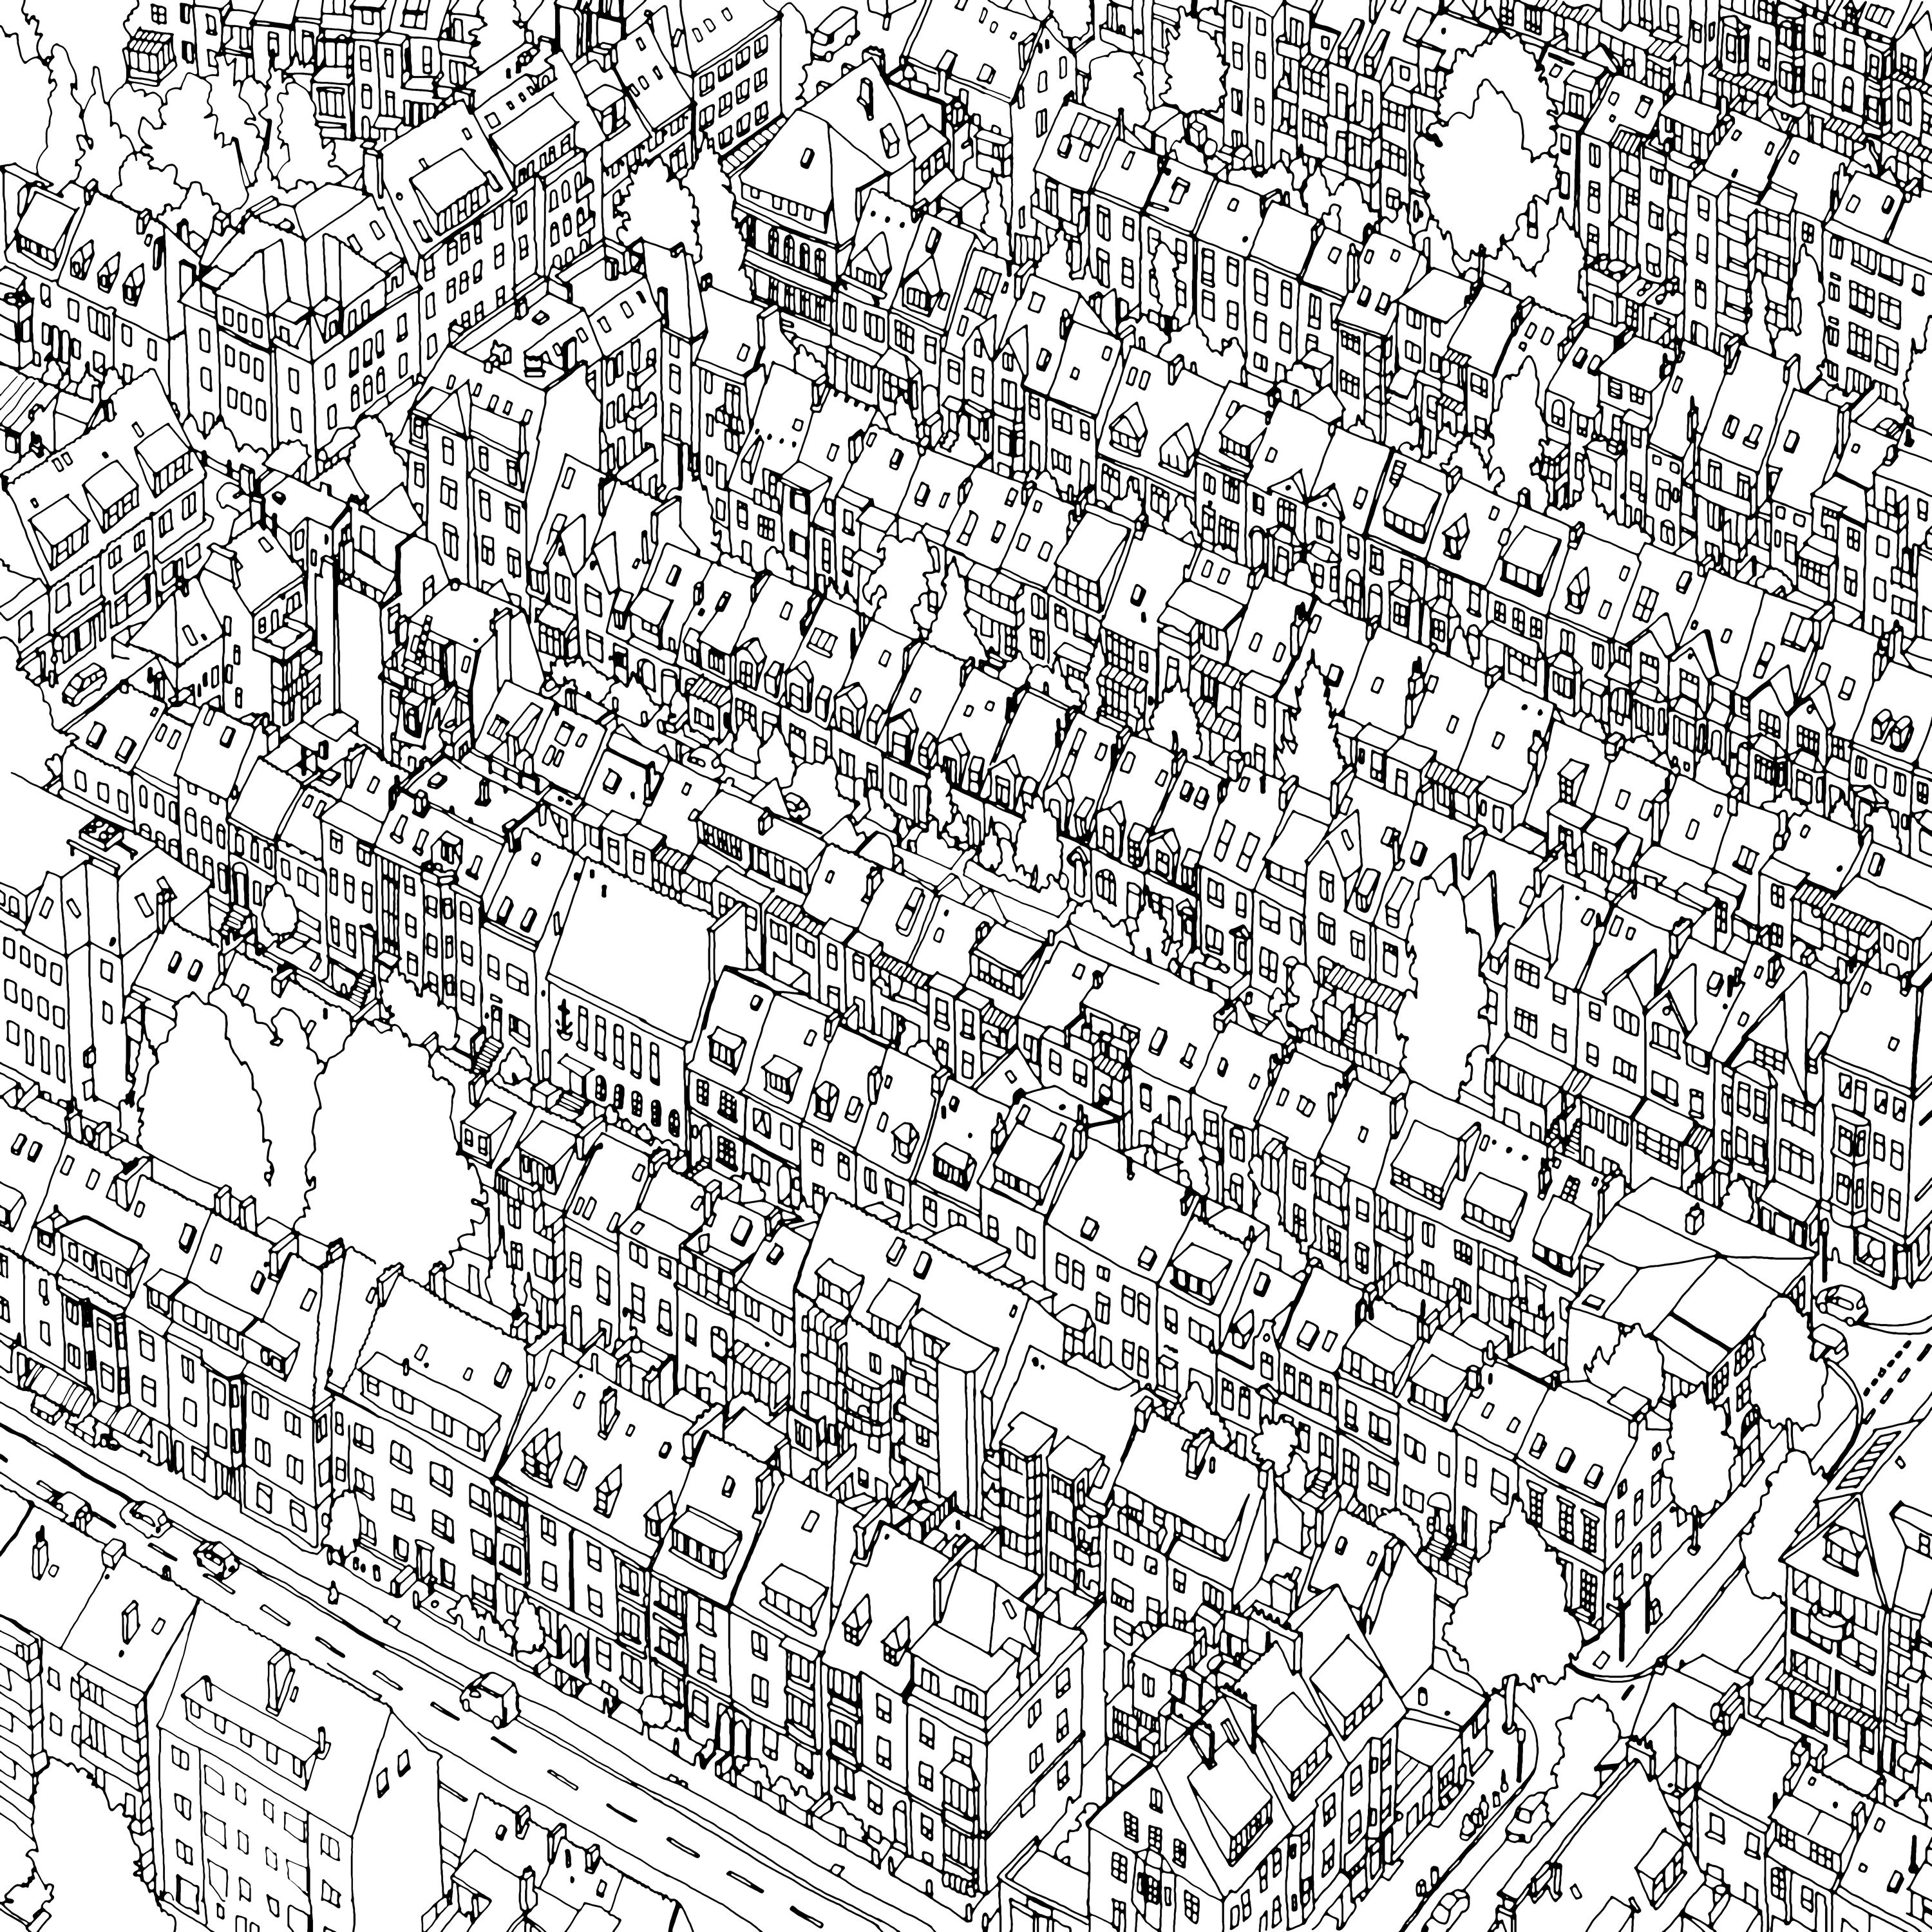 Grown up colouring book bored panda - Fantastic Cities Is A Unique Coloring Book For Adults That Chronicle Books Is Publishing In July The Book Is Full Of Incredibly Detailed And Unique